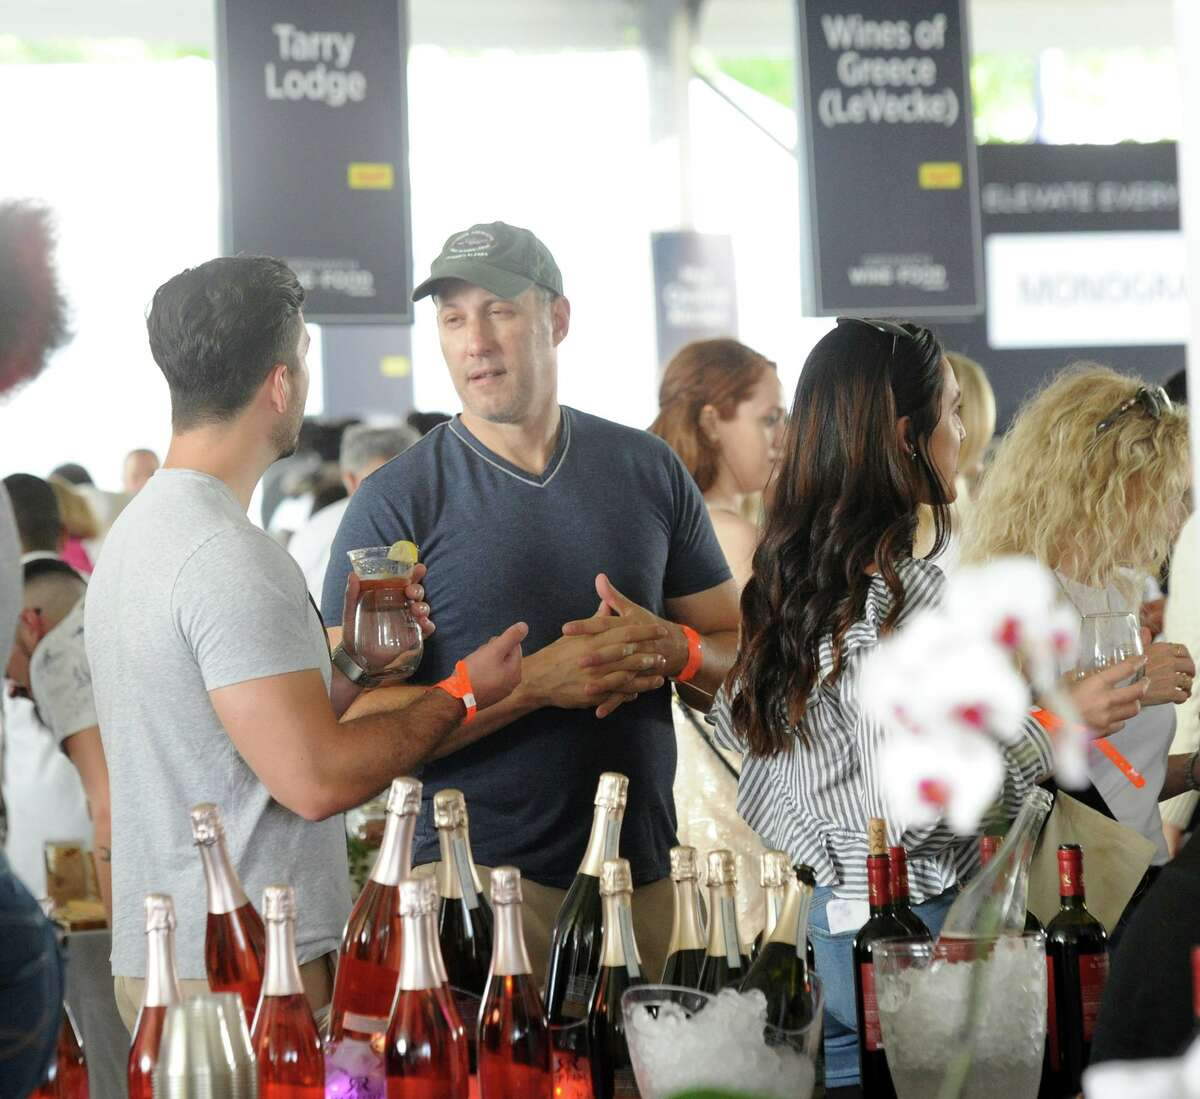 The annual Greenwich Wine + Food Festival at Roger Sherman Baldwin Park won't be able to go forward as hoped but plans are underway for two of them in 2021.